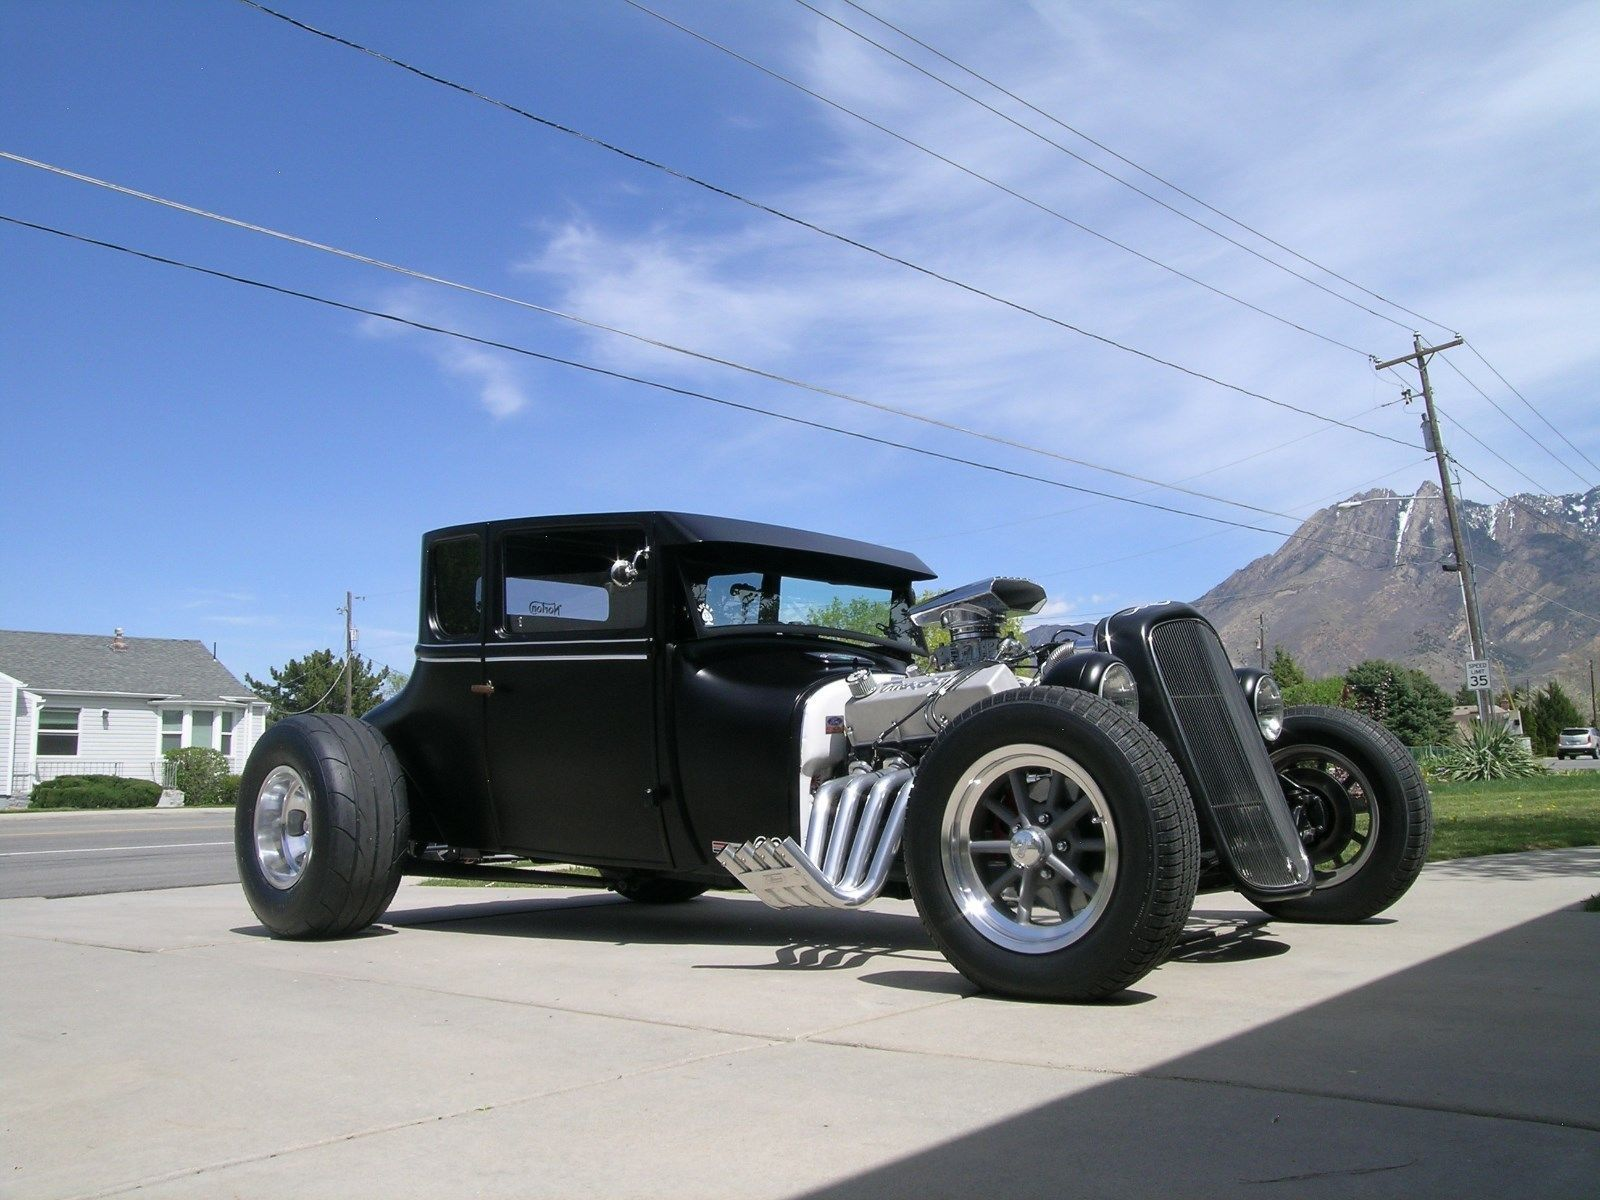 Black devil 1926 Ford Model T hot rod | Hot rods for sale ...